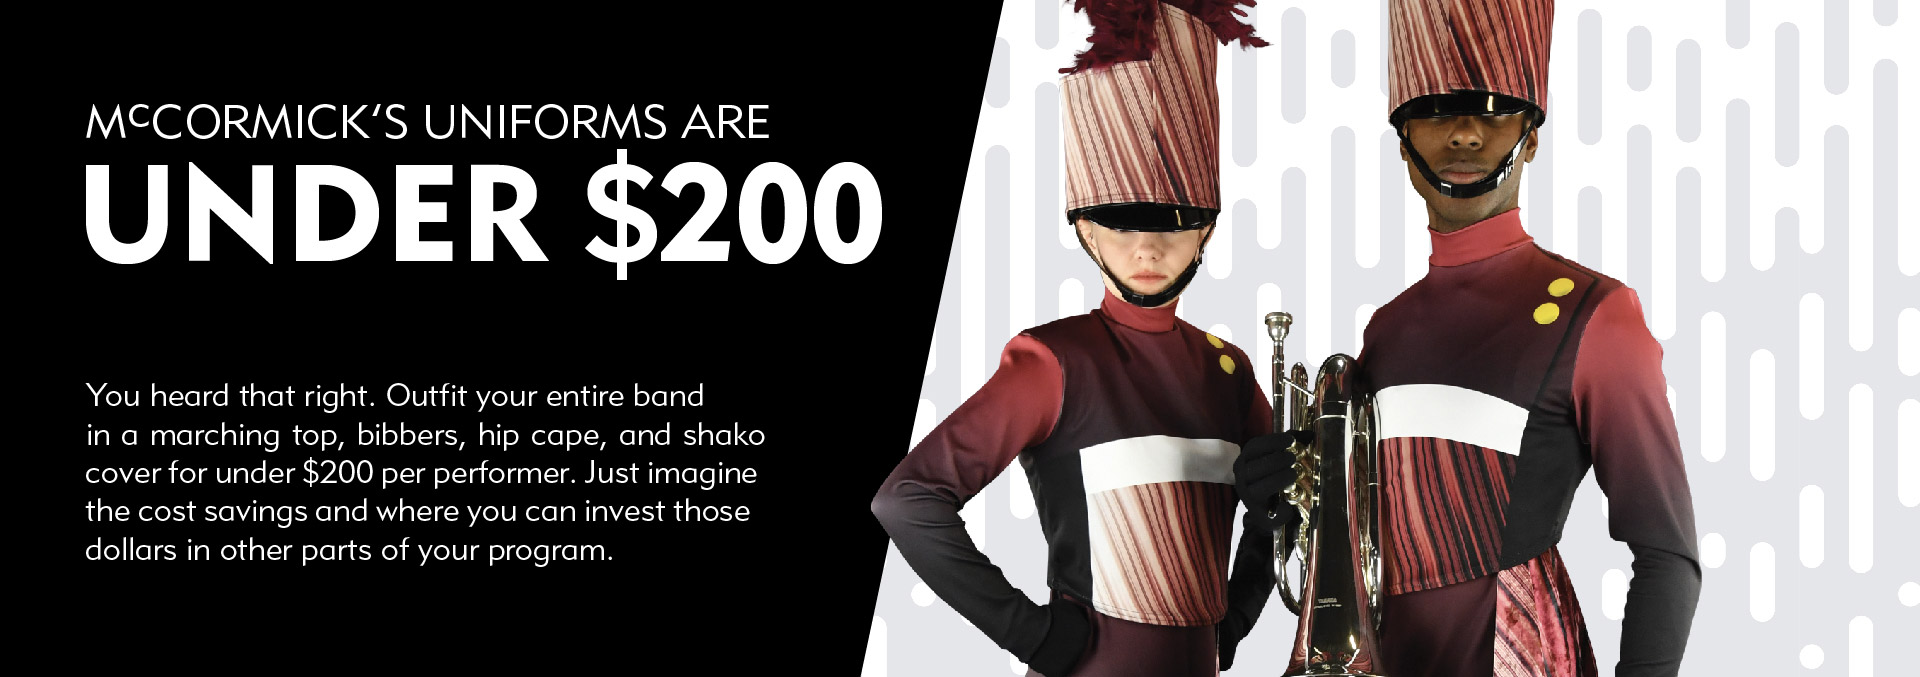 McCormick's marching band uniforms are under $200. You heard that right. Outfit your entire band in a marching top, bibbers, hip cape, and shako cover for under $200 per performer. Just imagine the cost savings and where you can invest those dollars in other parts of your program.